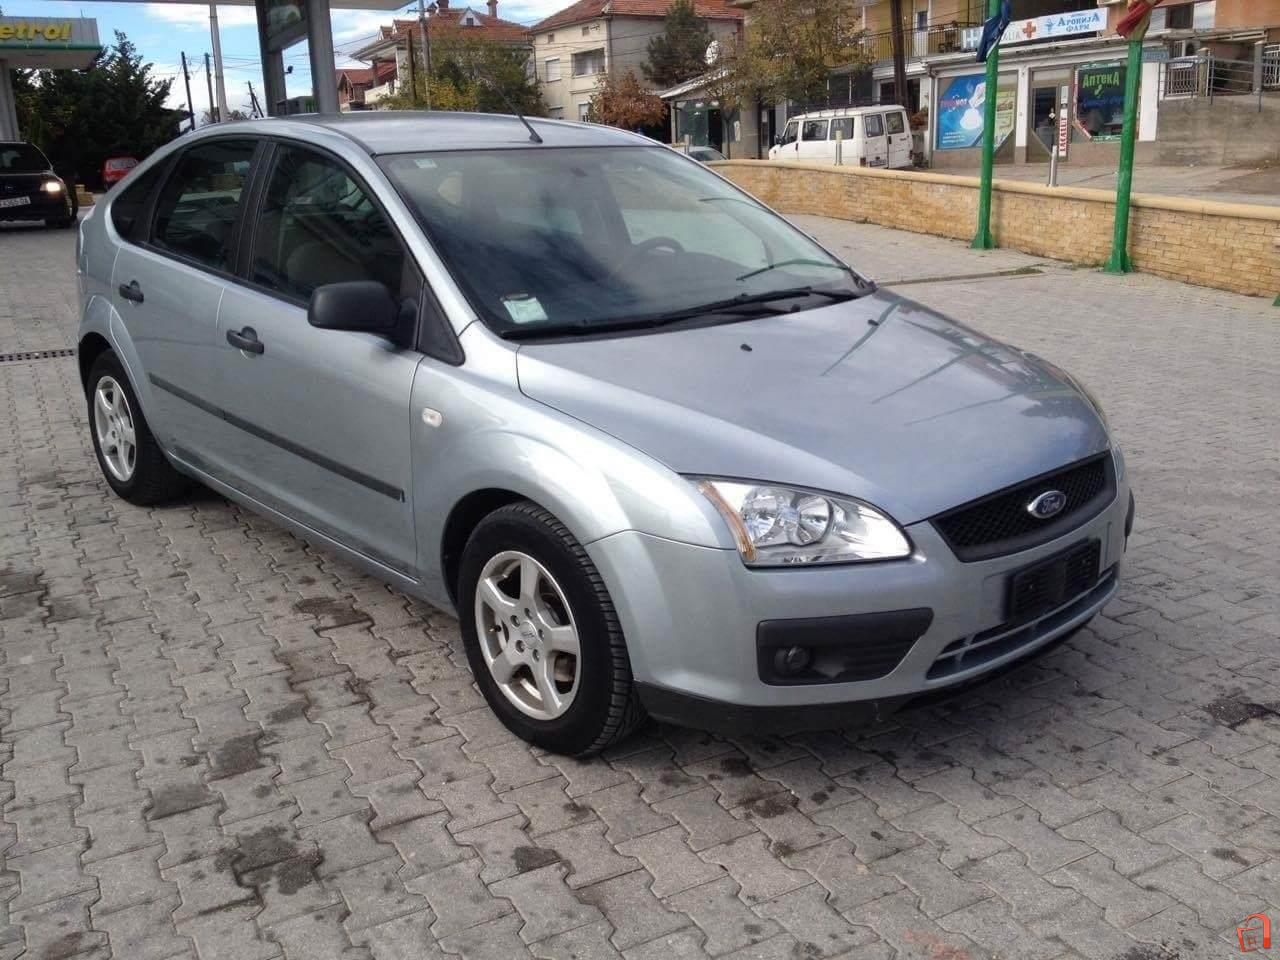 ad ford focus 1 6 tdci 90ks unikat auto 06 for sale prilep prilep vehicles. Black Bedroom Furniture Sets. Home Design Ideas